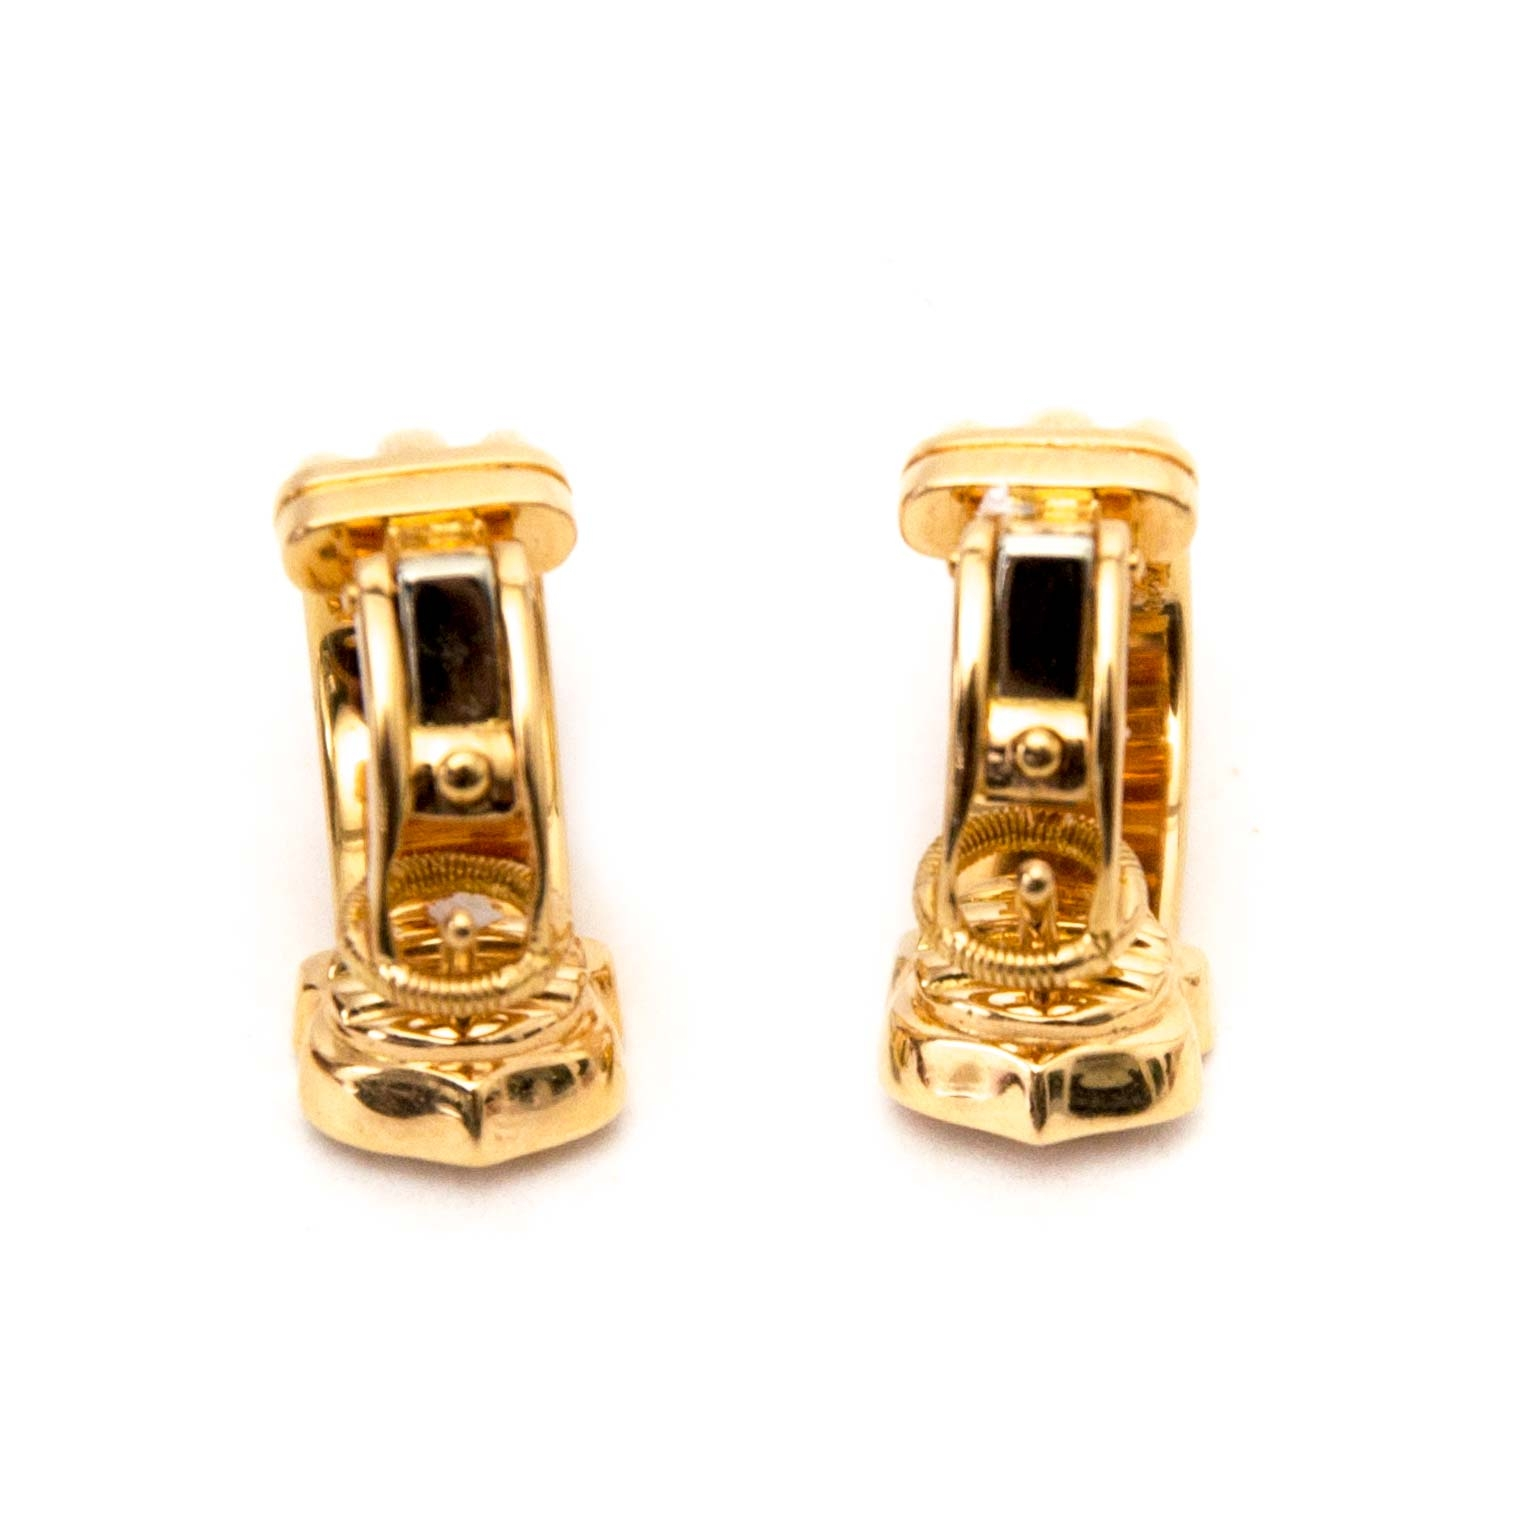 buy secondhand authentic Cartier Limited Edition Ressort CC Earrings for less at Labellov, online vintage webshop